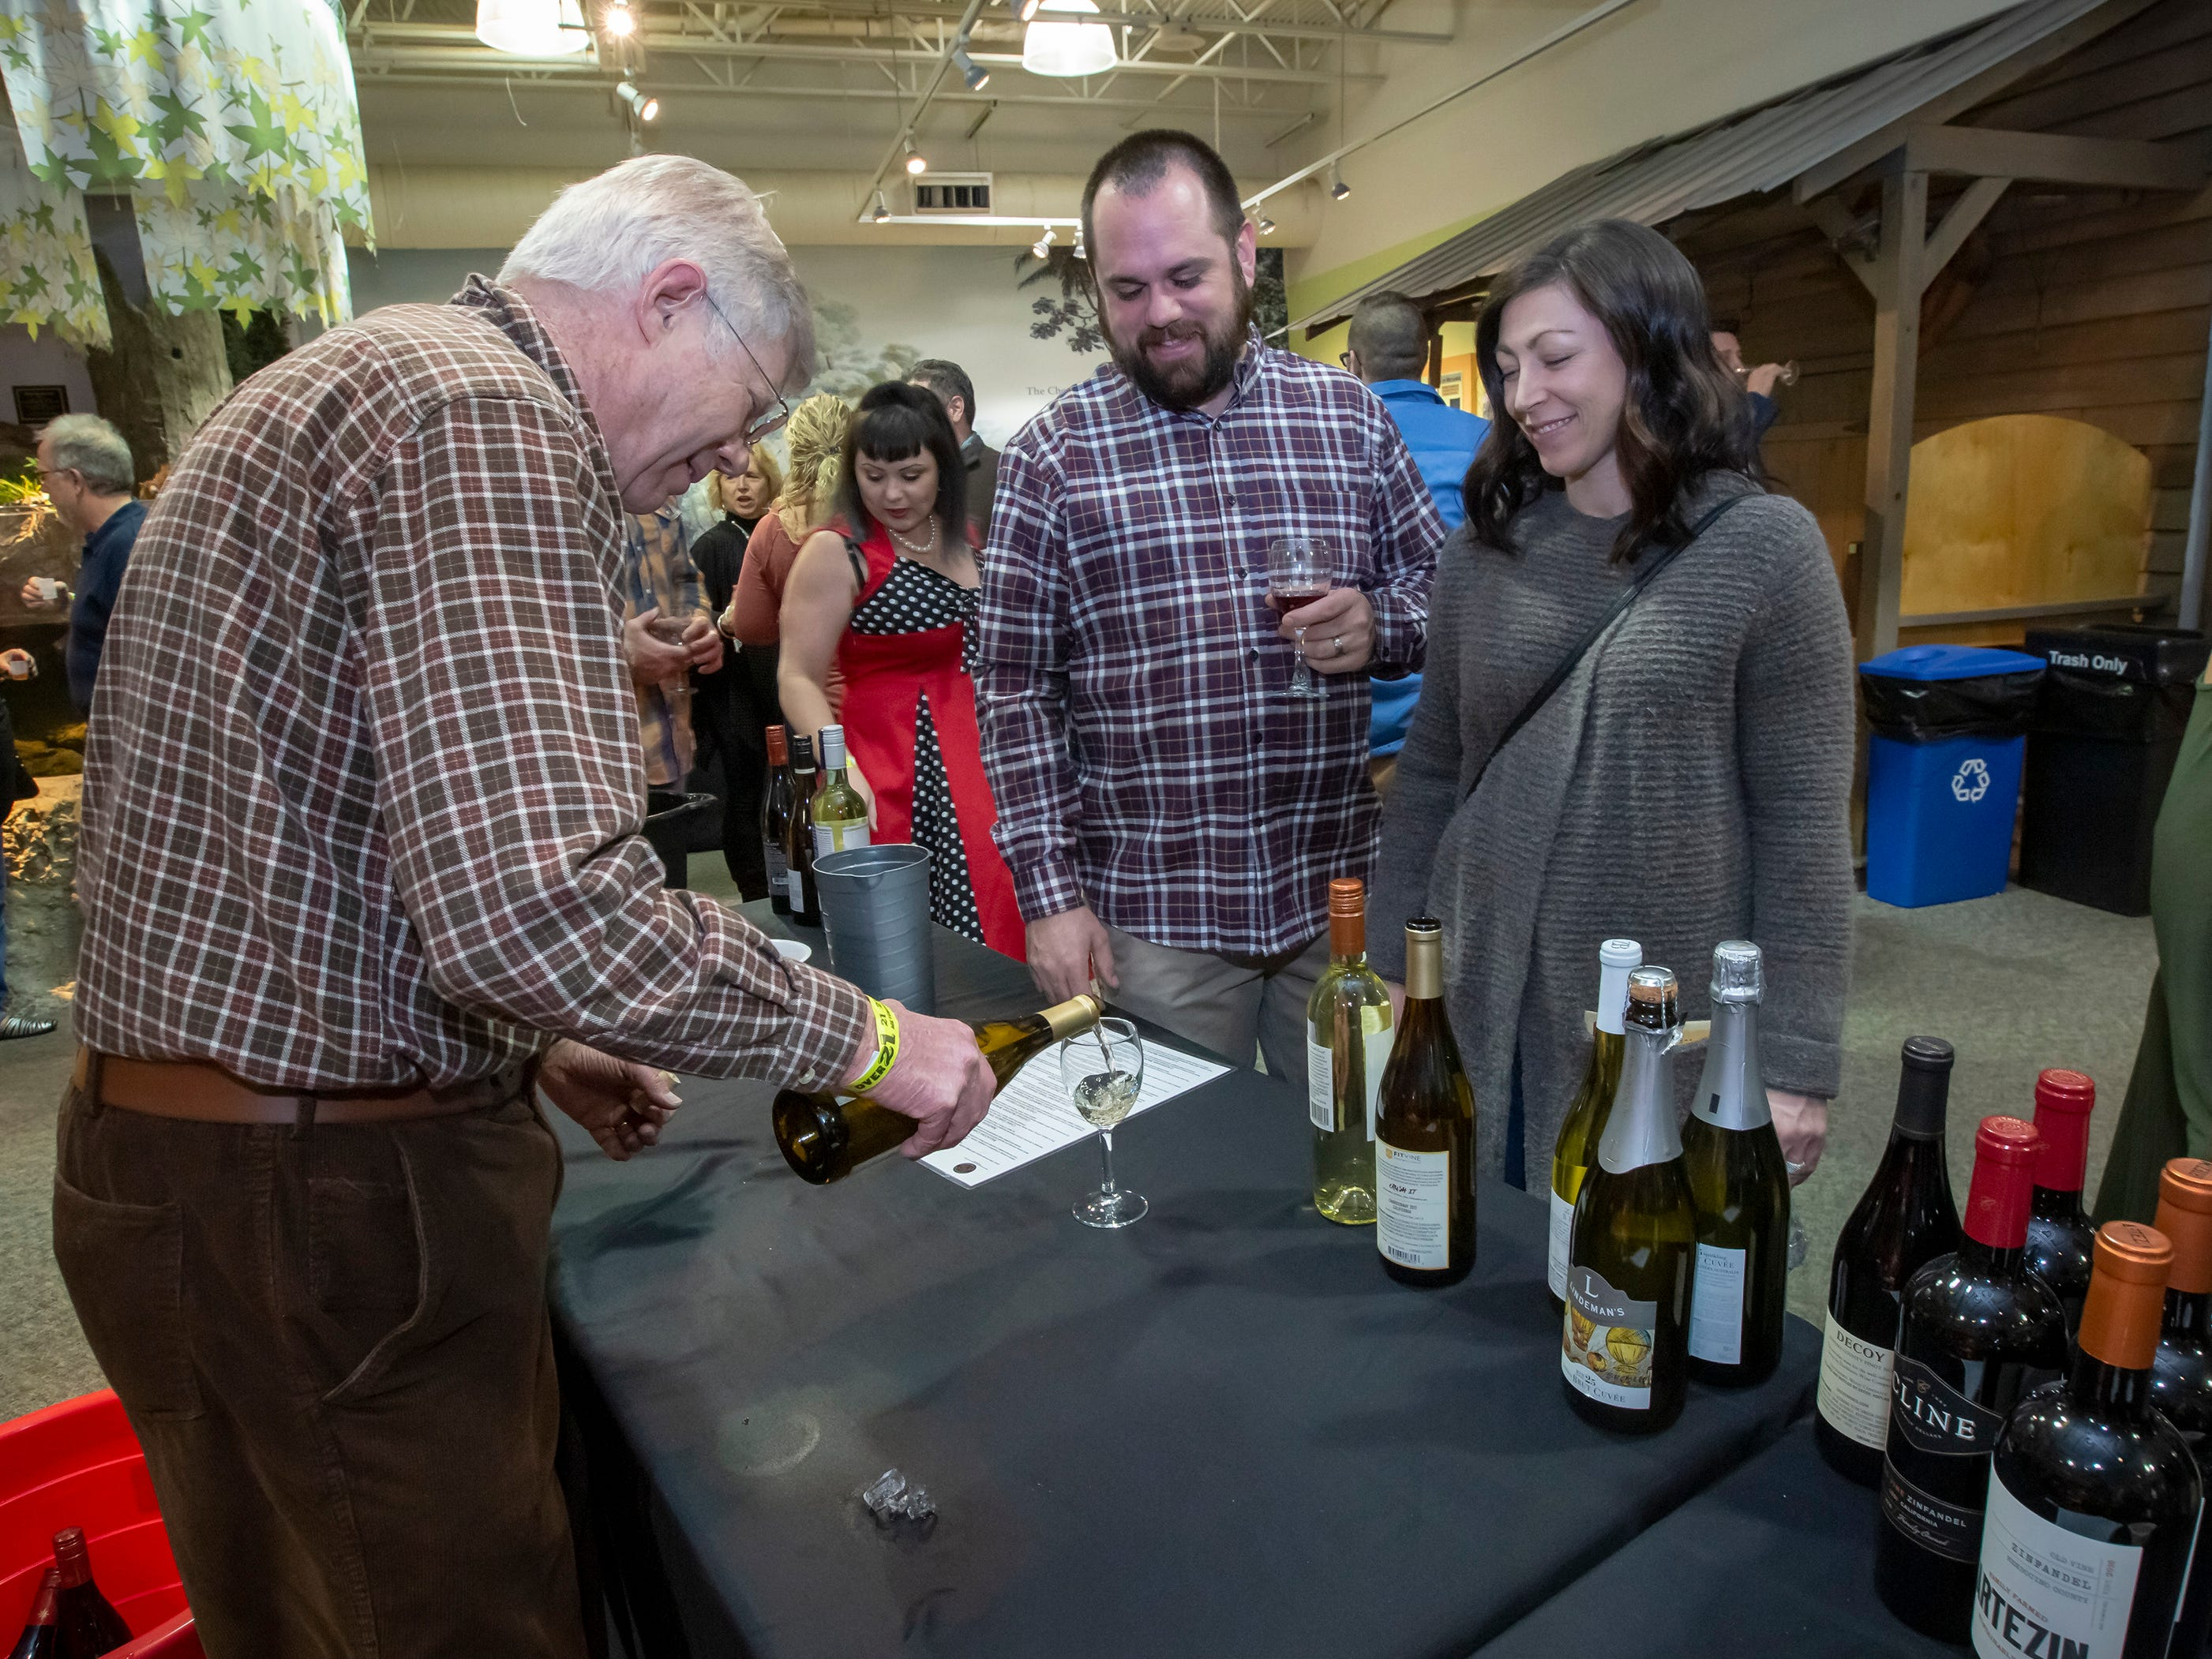 The sixth annual Wine & Whiskey at the Wetlands event was held Friday, March 1, 2019 at Discovery Center at Murfree Spring.